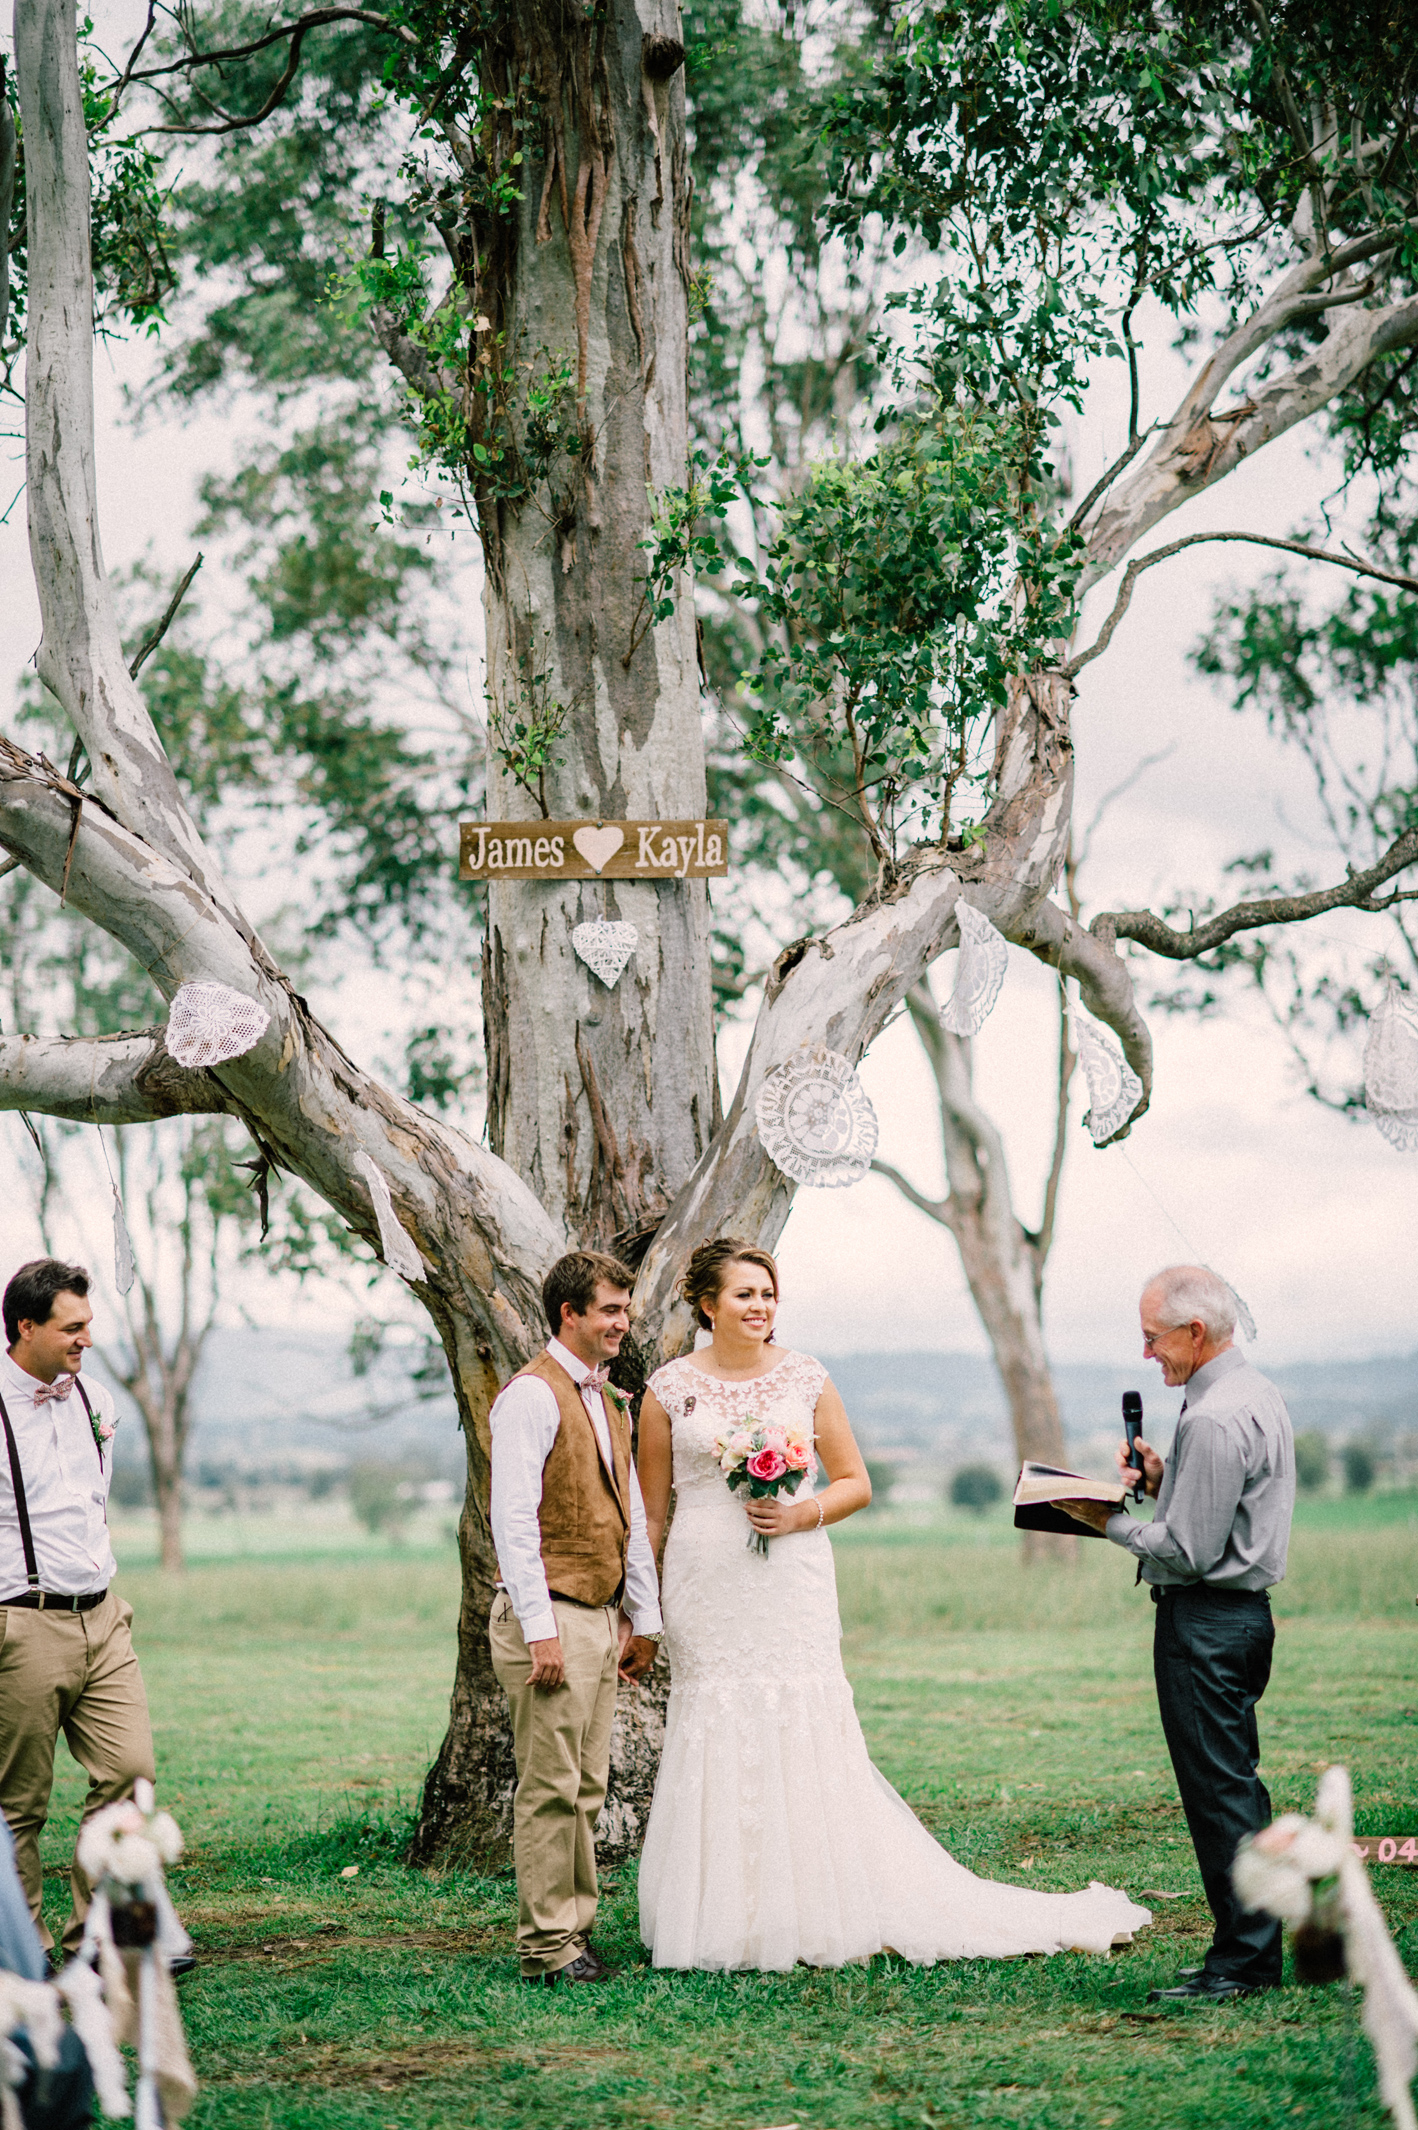 055-kayla-james-beaudesert-wedding-sophie-baker-photography